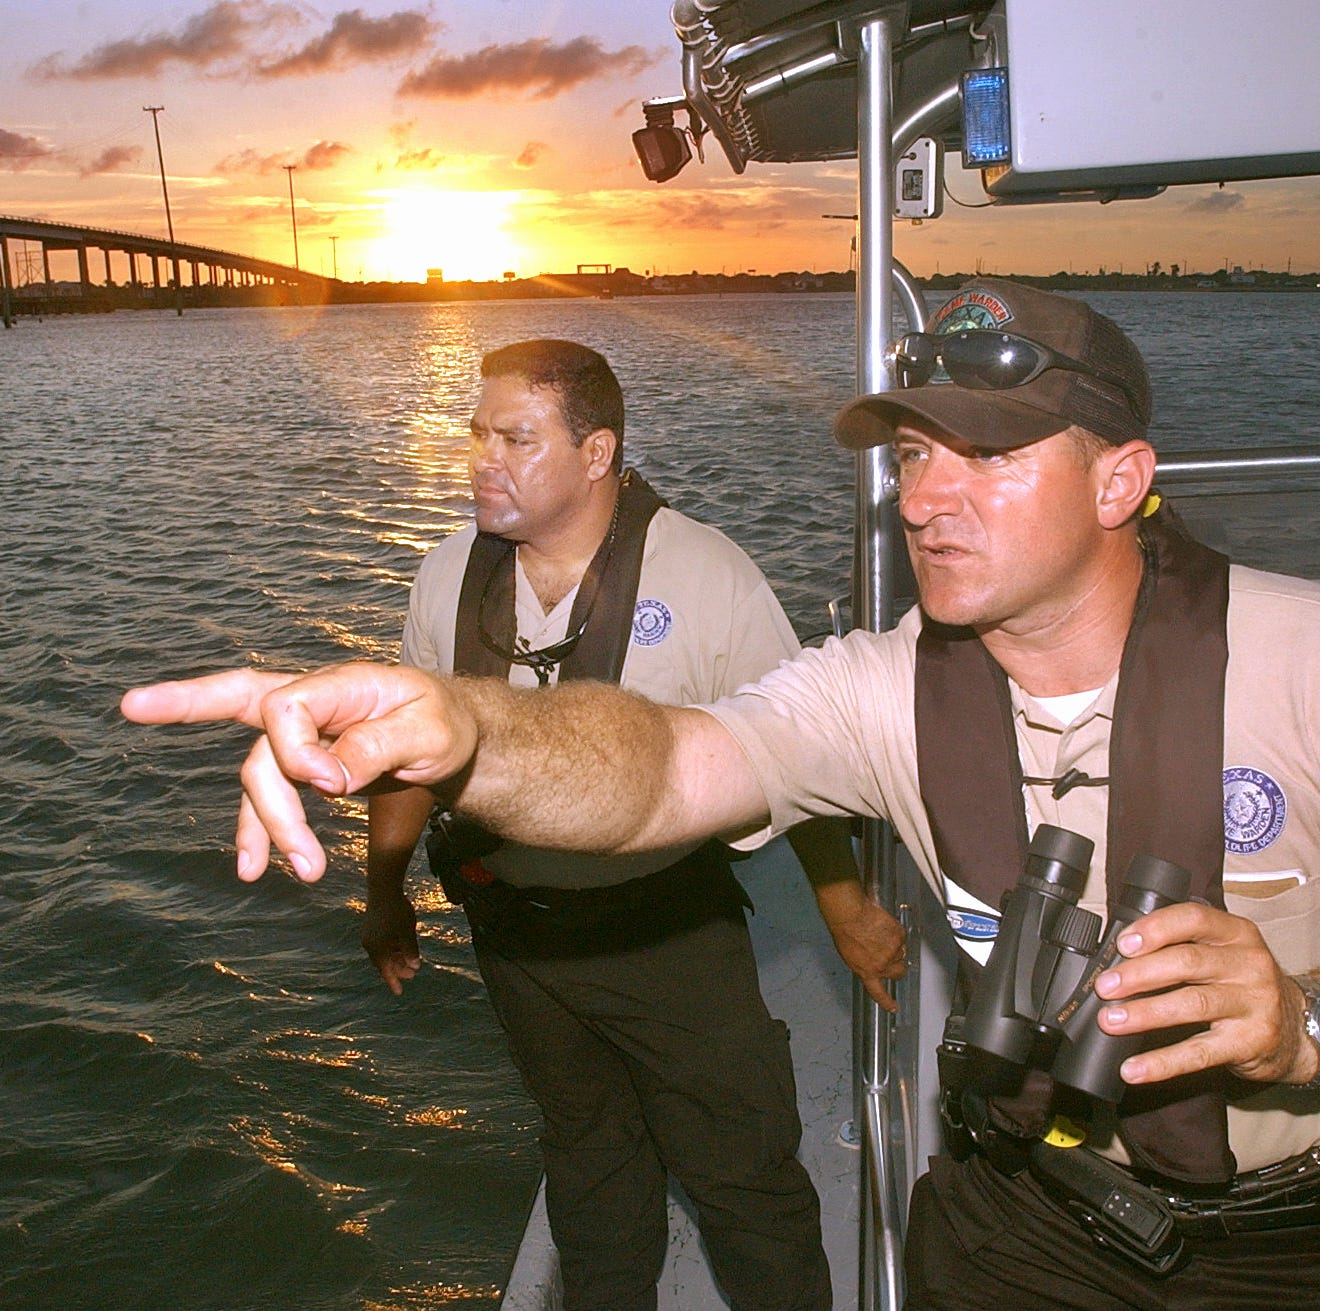 Here are some of the crazy things Texas Game Wardens encounter on the job